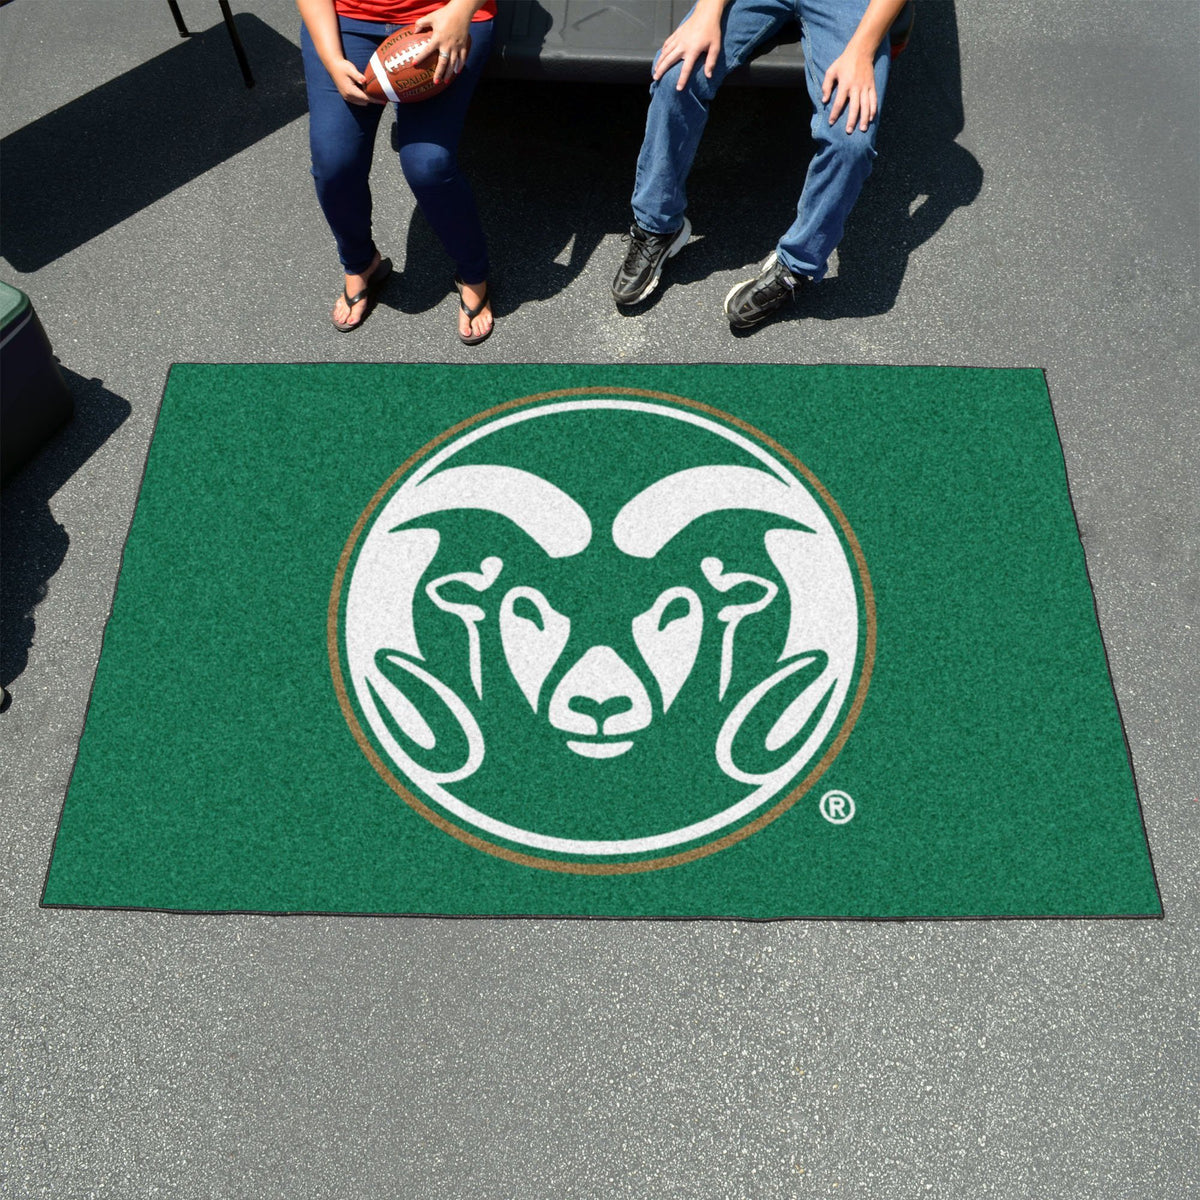 Collegiate - Ulti-Mat: A - L Collegiate Mats, Rectangular Mats, Ulti-Mat, Collegiate, Home Fan Mats Colorado State